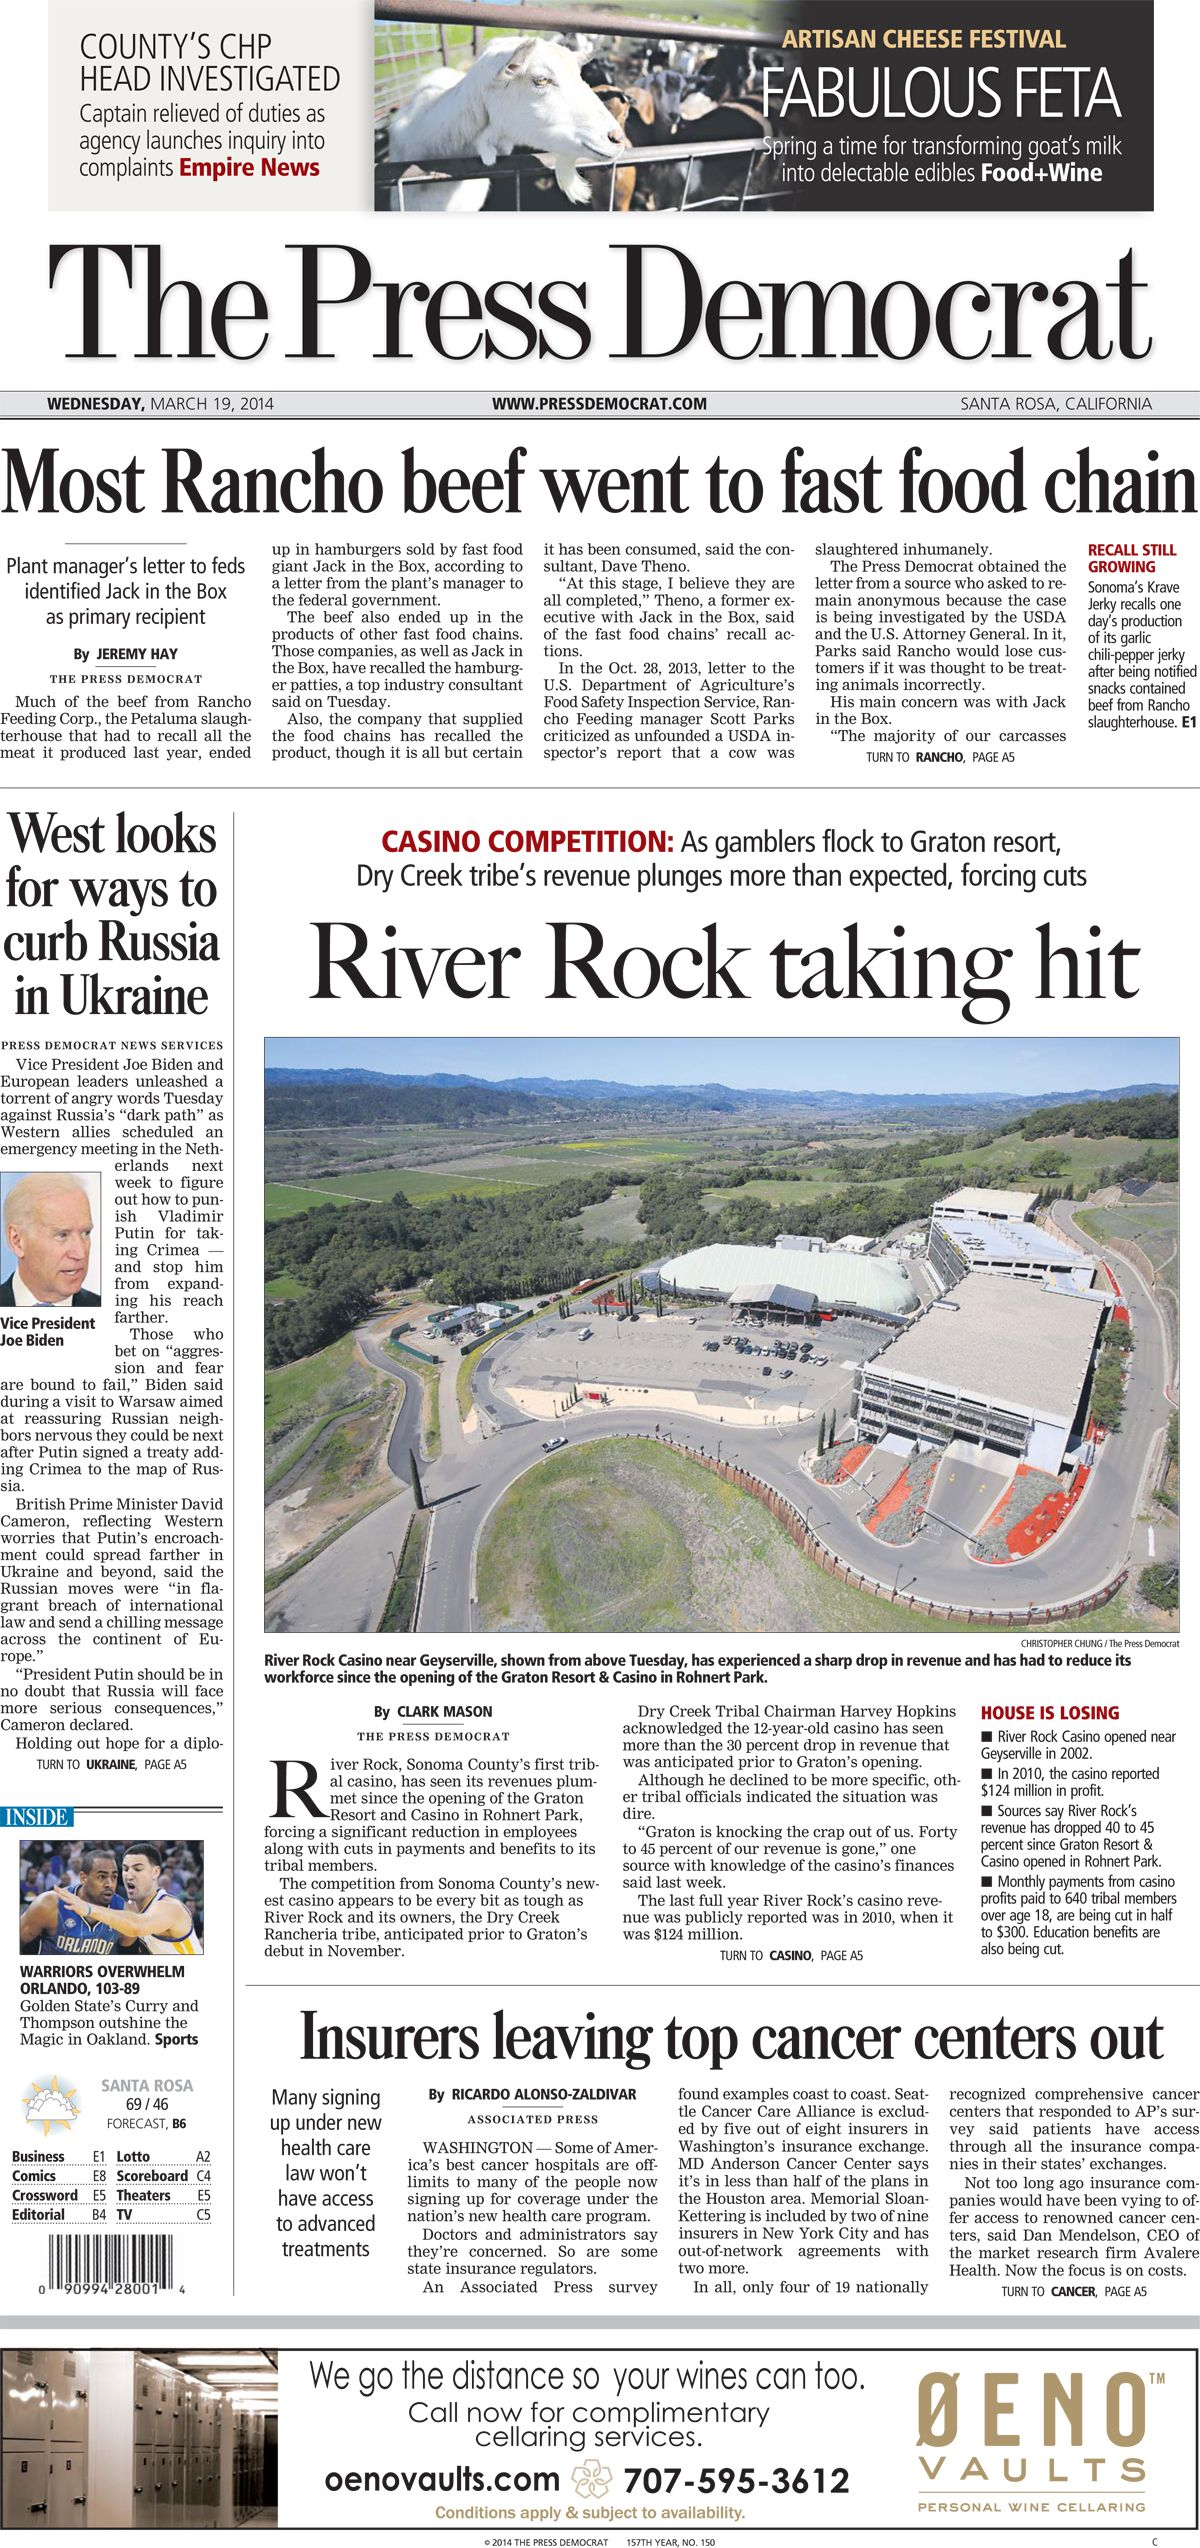 Press Democrat front page from Wed. March 19, 2014.